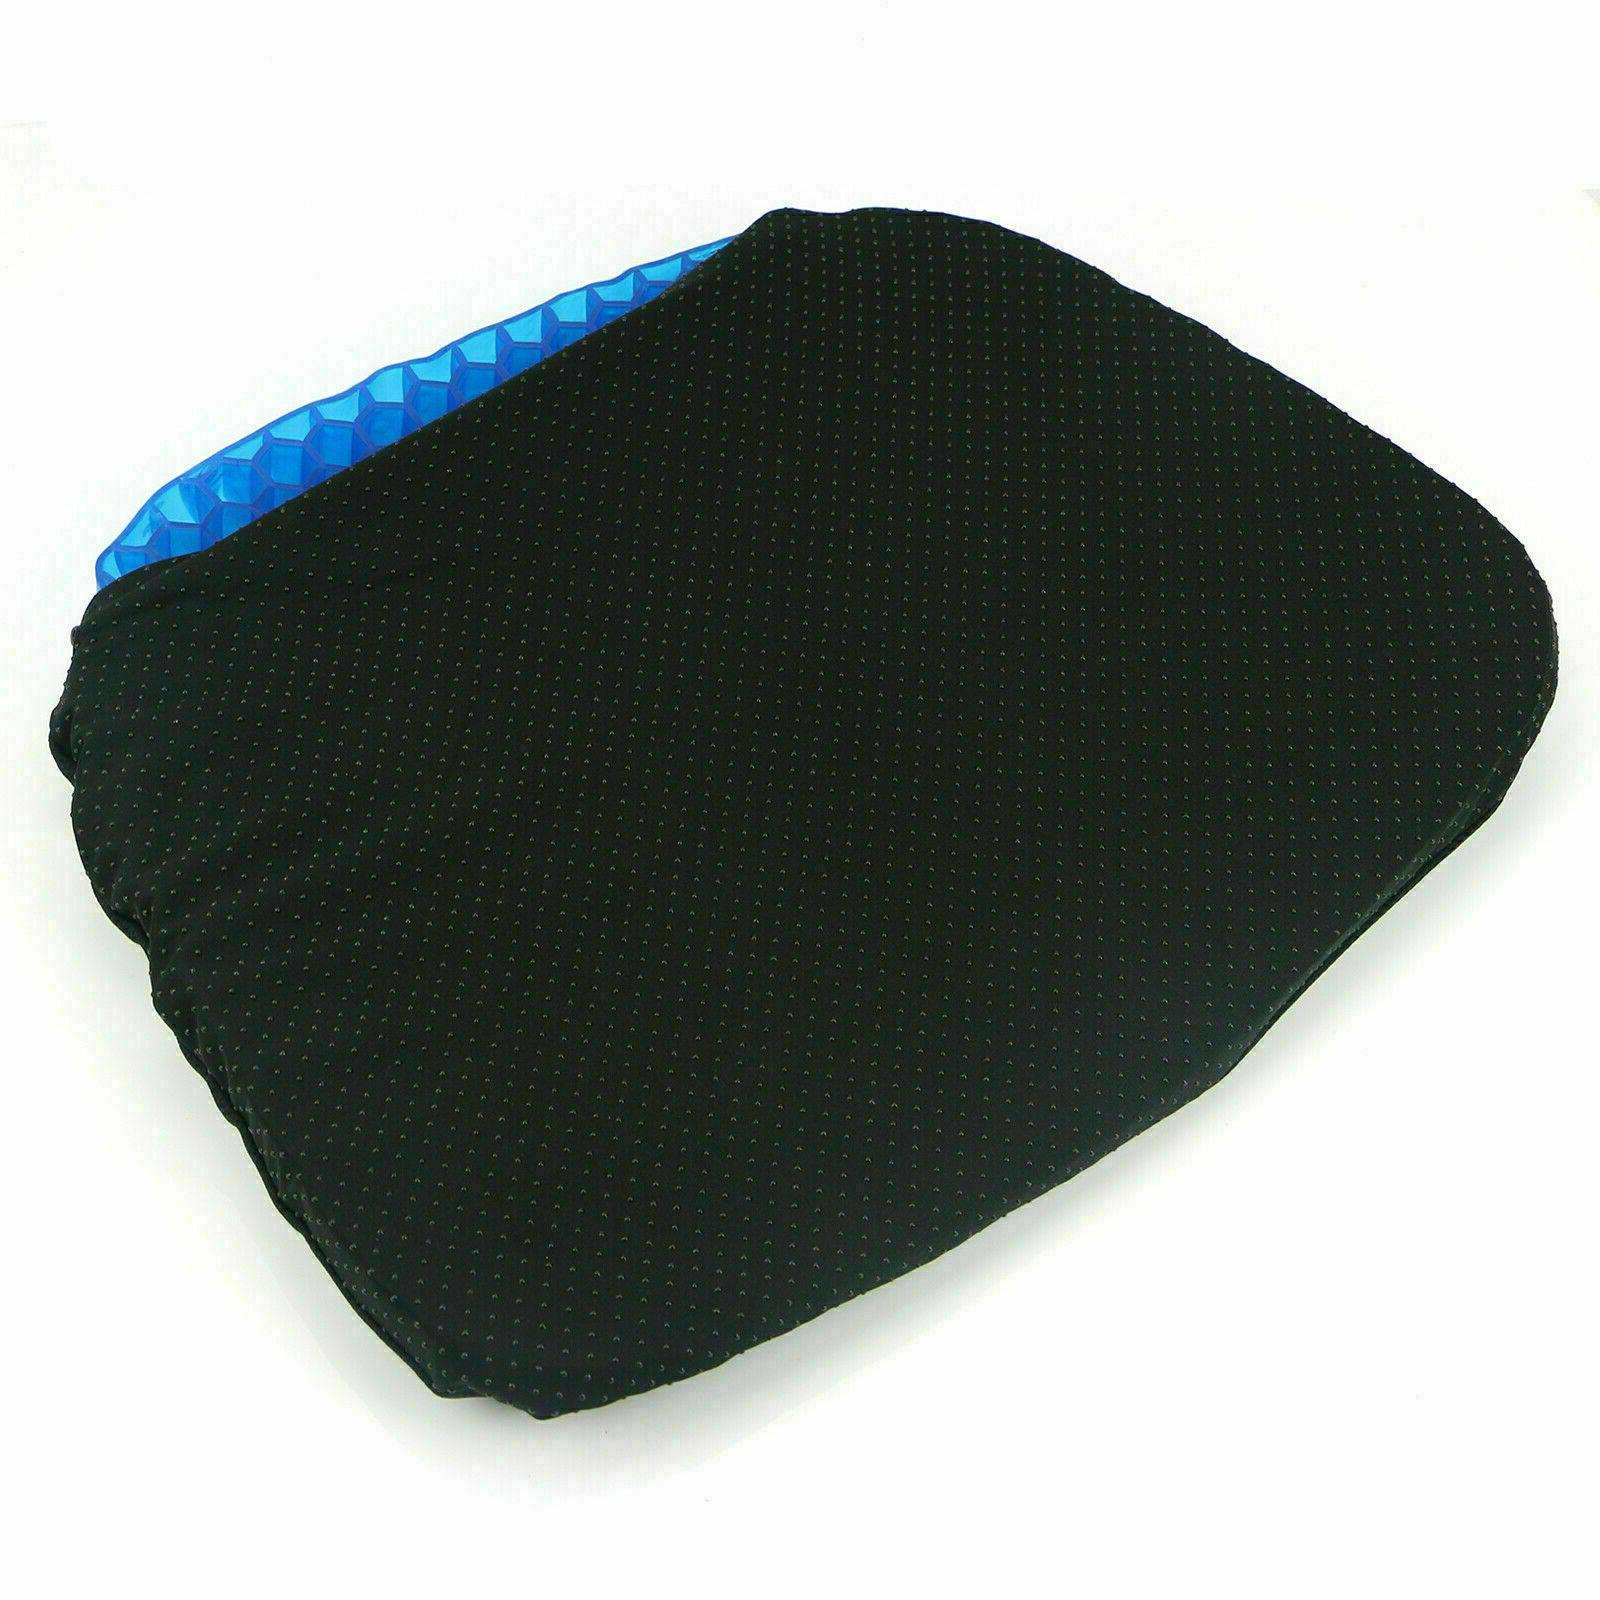 Breathable Gel Flexing Pillow Sitter